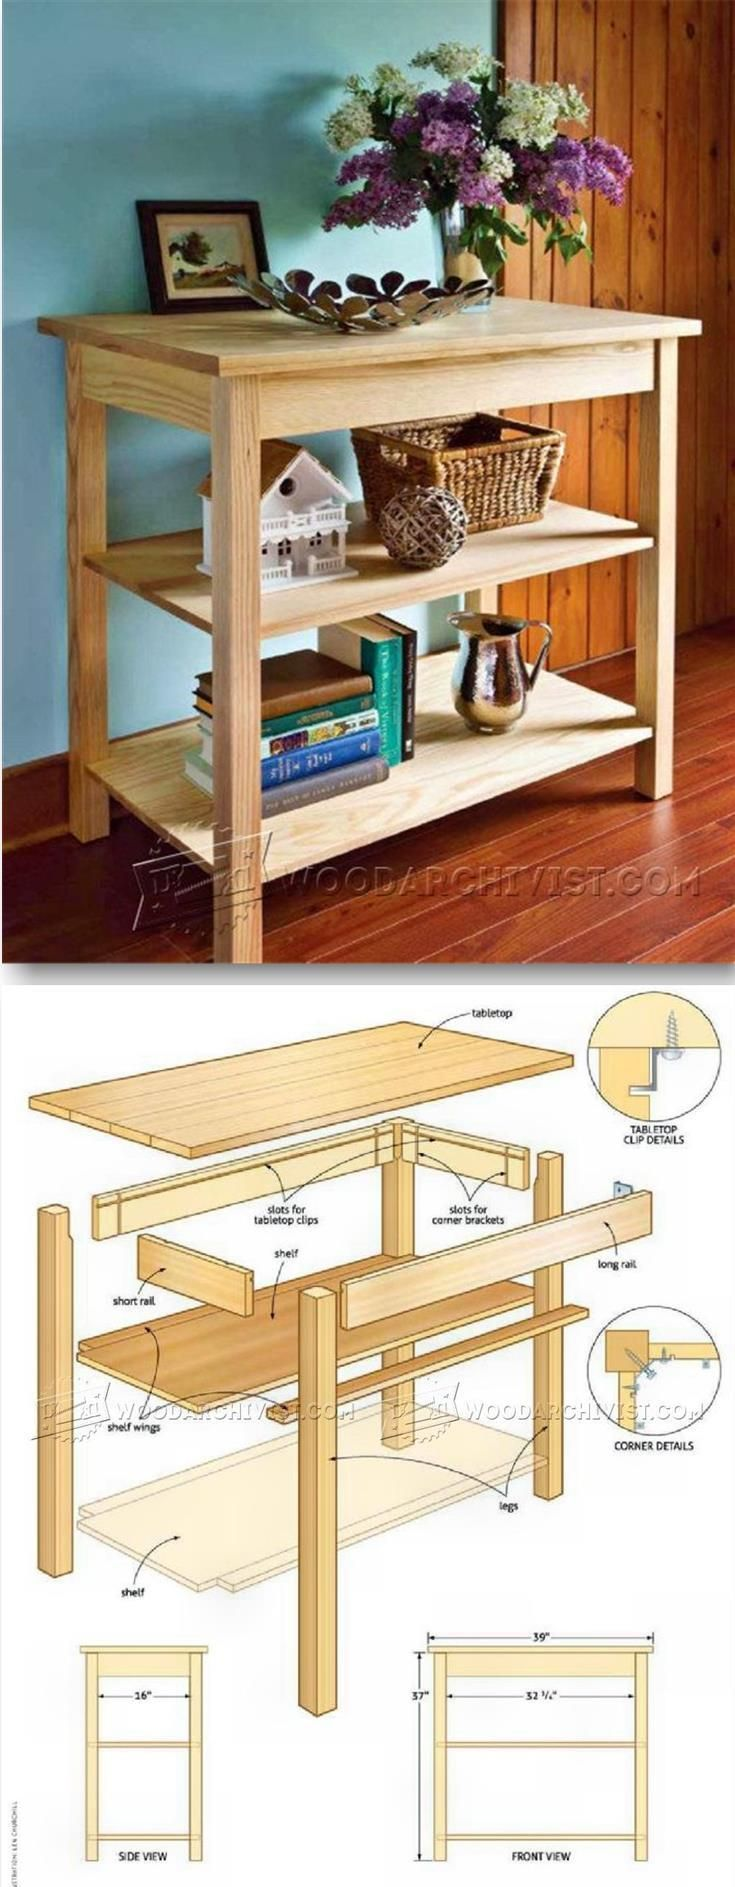 Ash Table Plans - Furniture Plans and Projects | http://WoodArchivist.com?utm_content=bufferbac02&utm_medium=social&utm_source=pinterest.com&utm_campaign=buffer